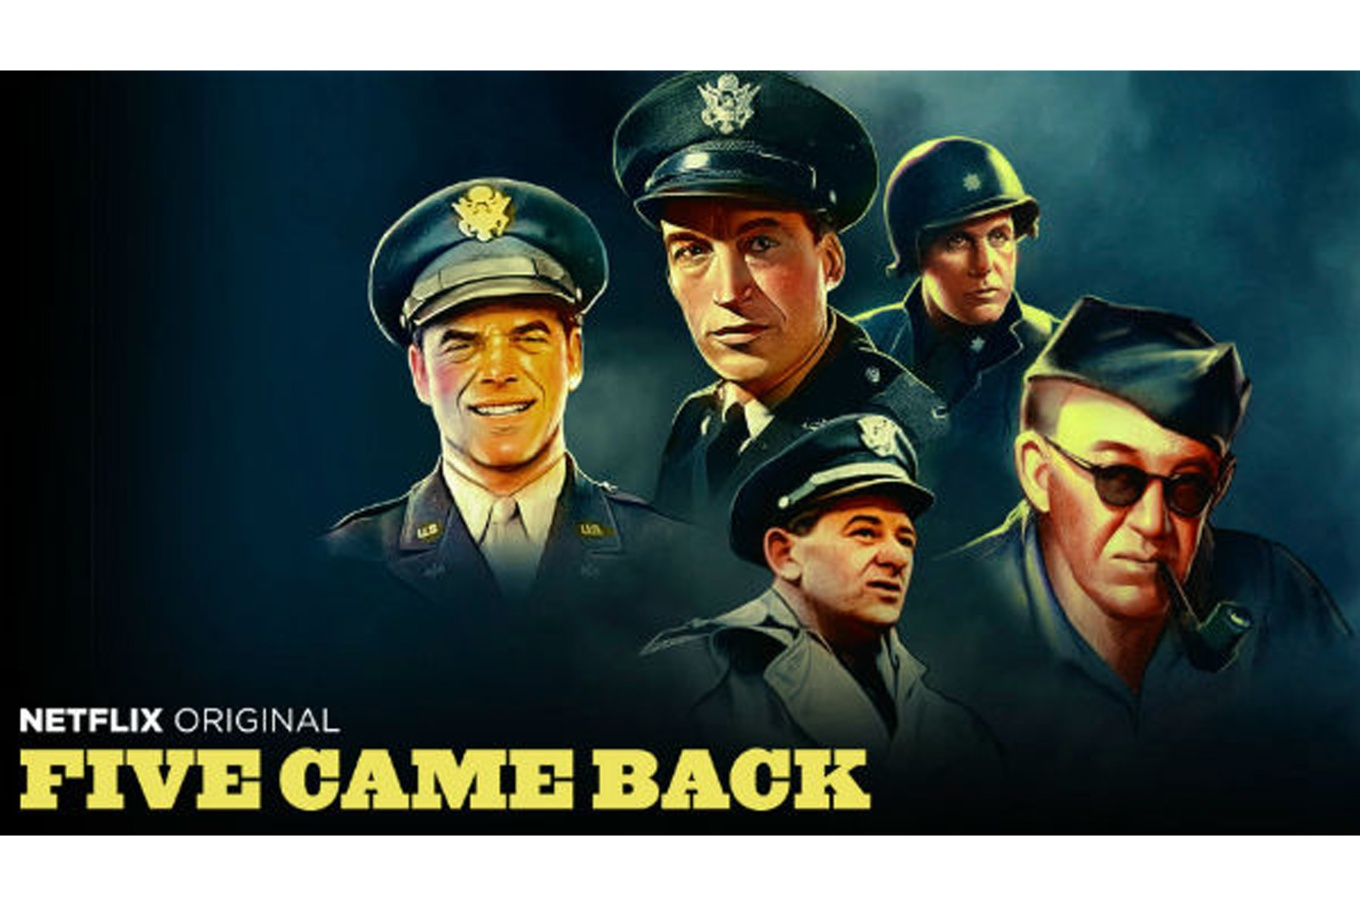 five came back netflix capra huston wyler ford stevens